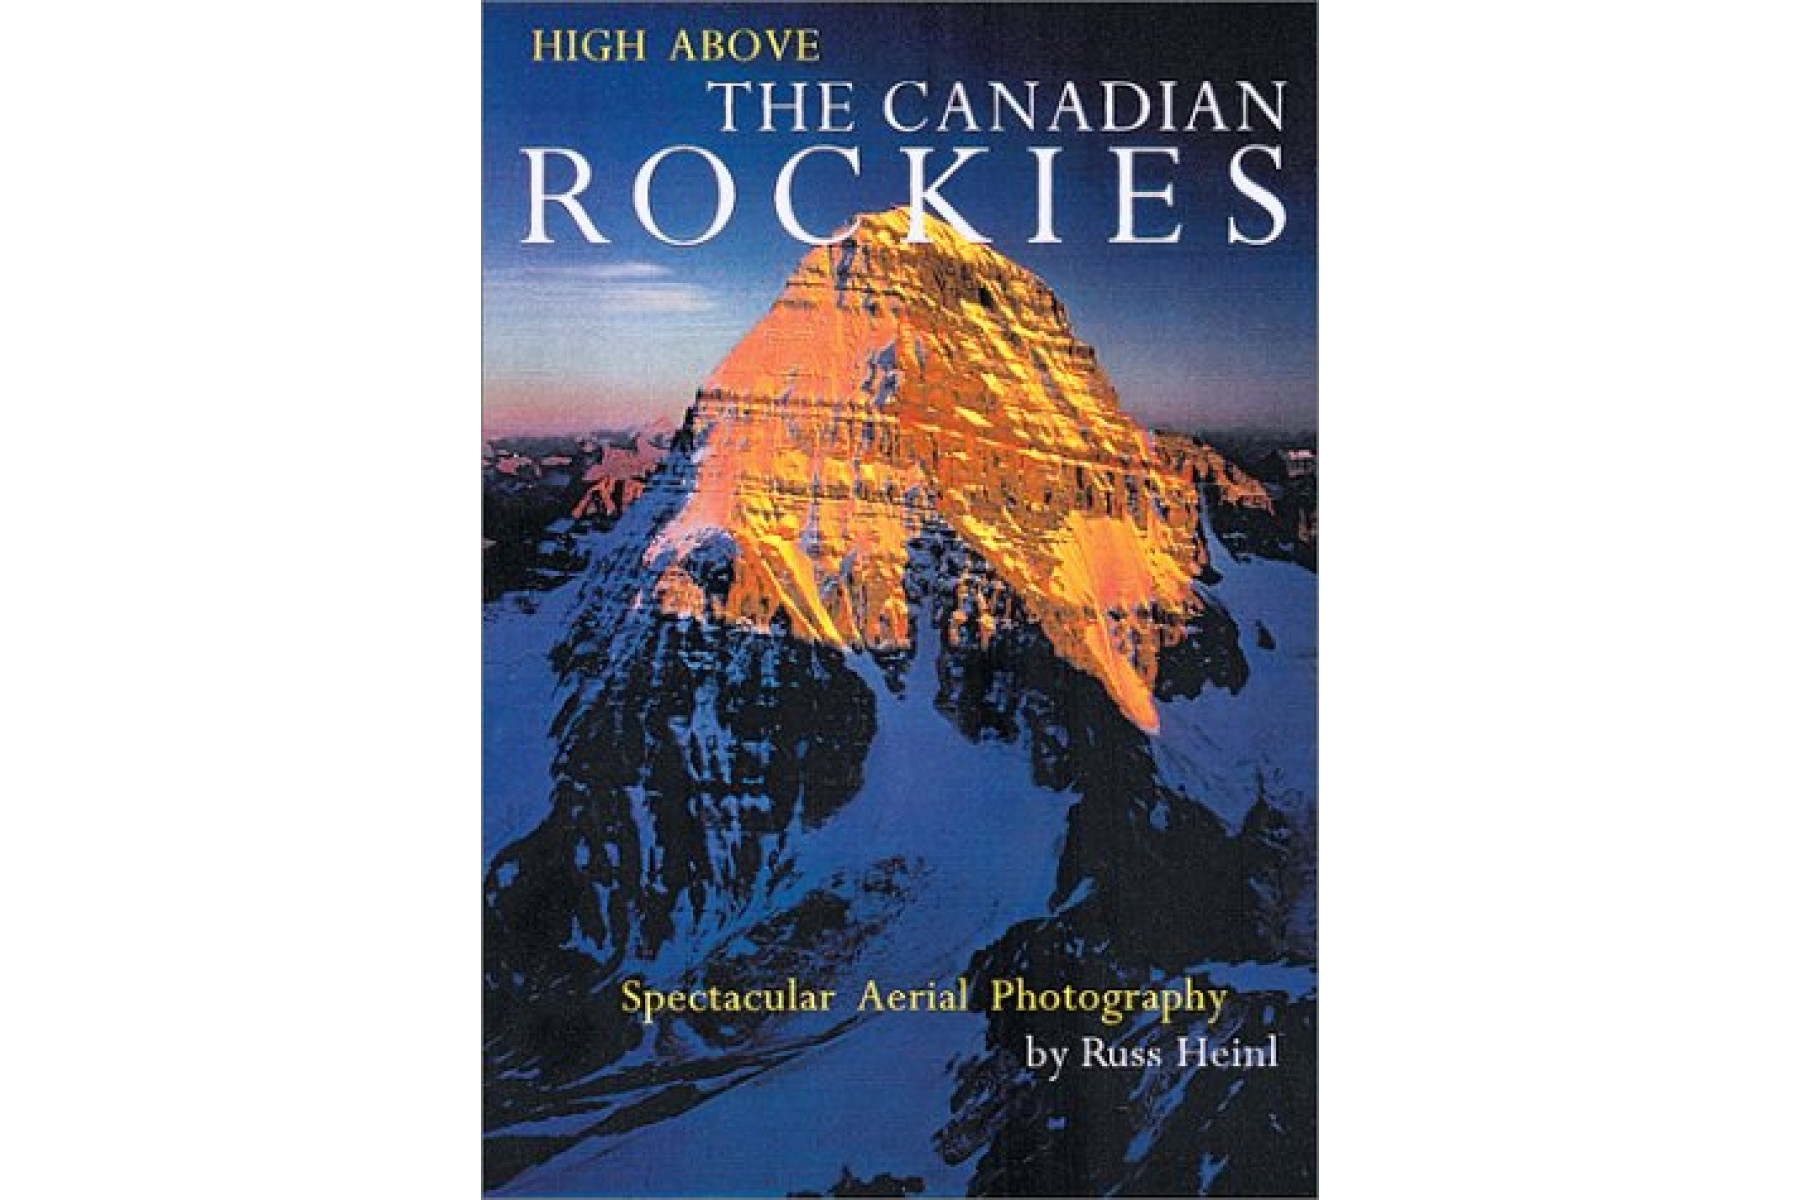 High Above the Canadian Rockies: Spectacular Aerial Photography